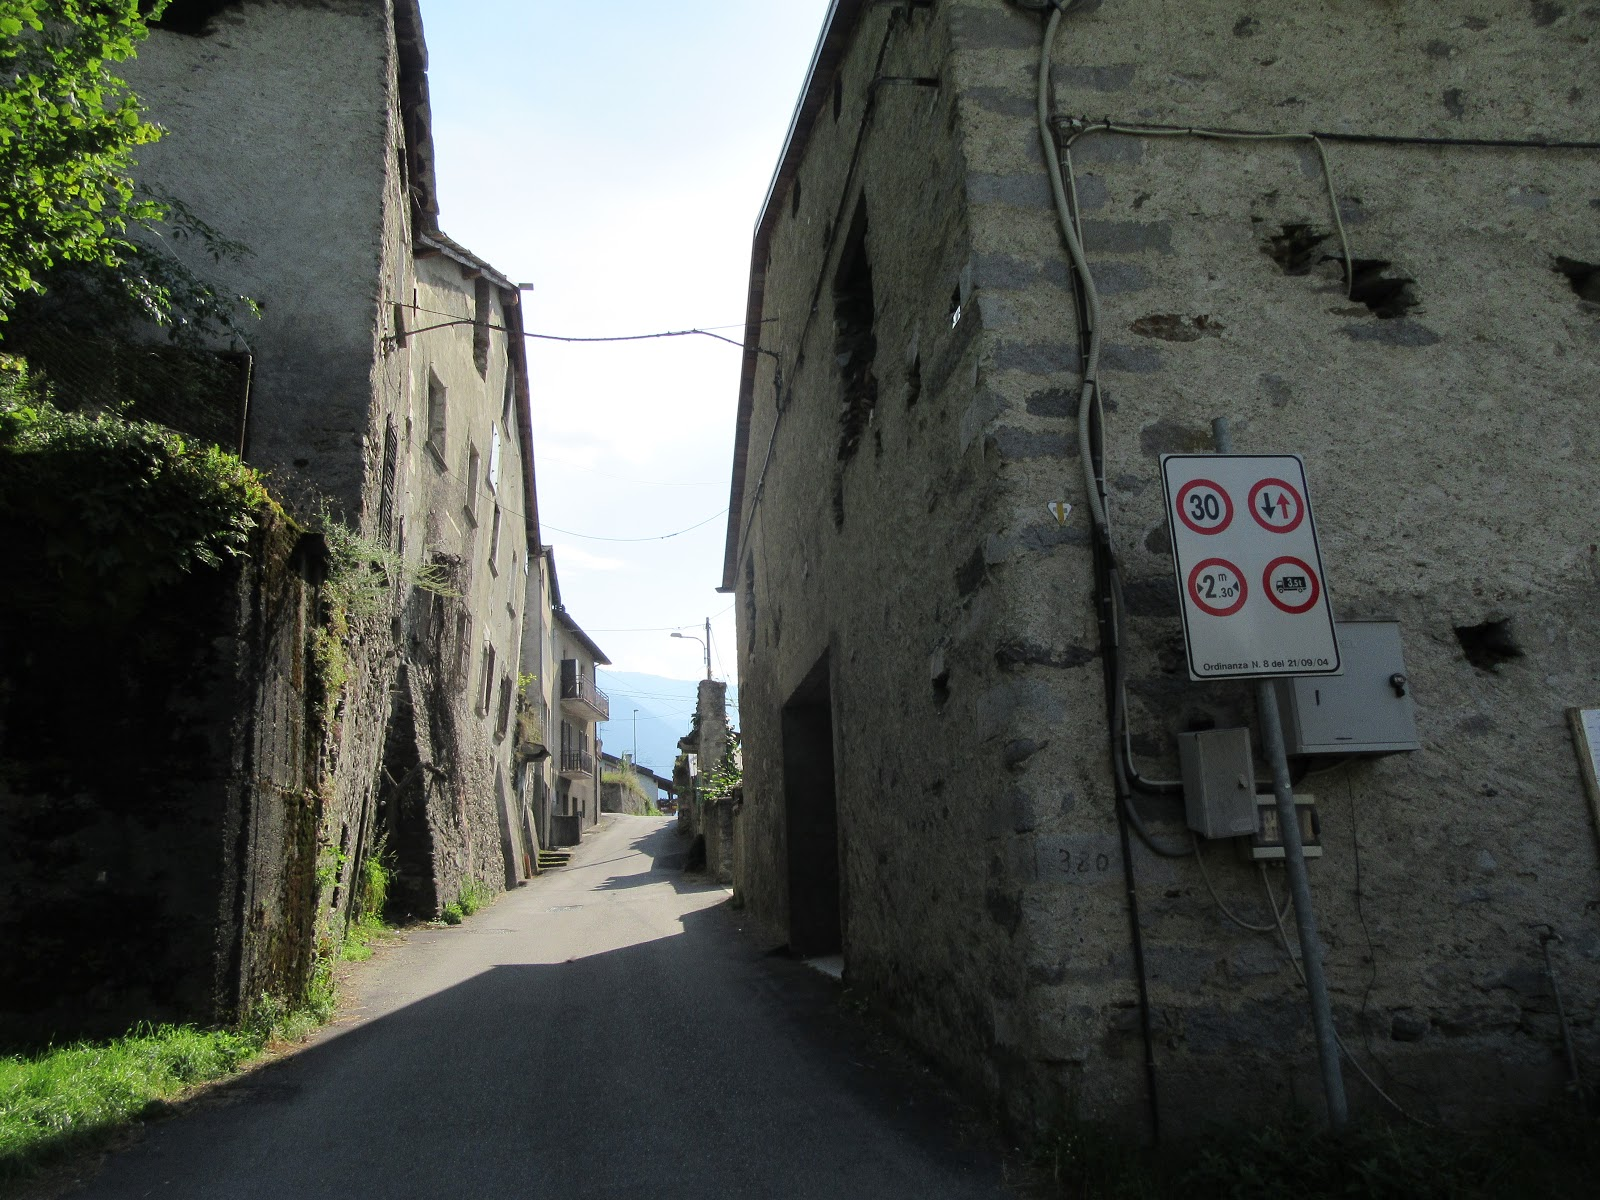 Cycling Passo del Mortirolo from Mazzo di Valtellina - start of climb, narrow road between old buildings